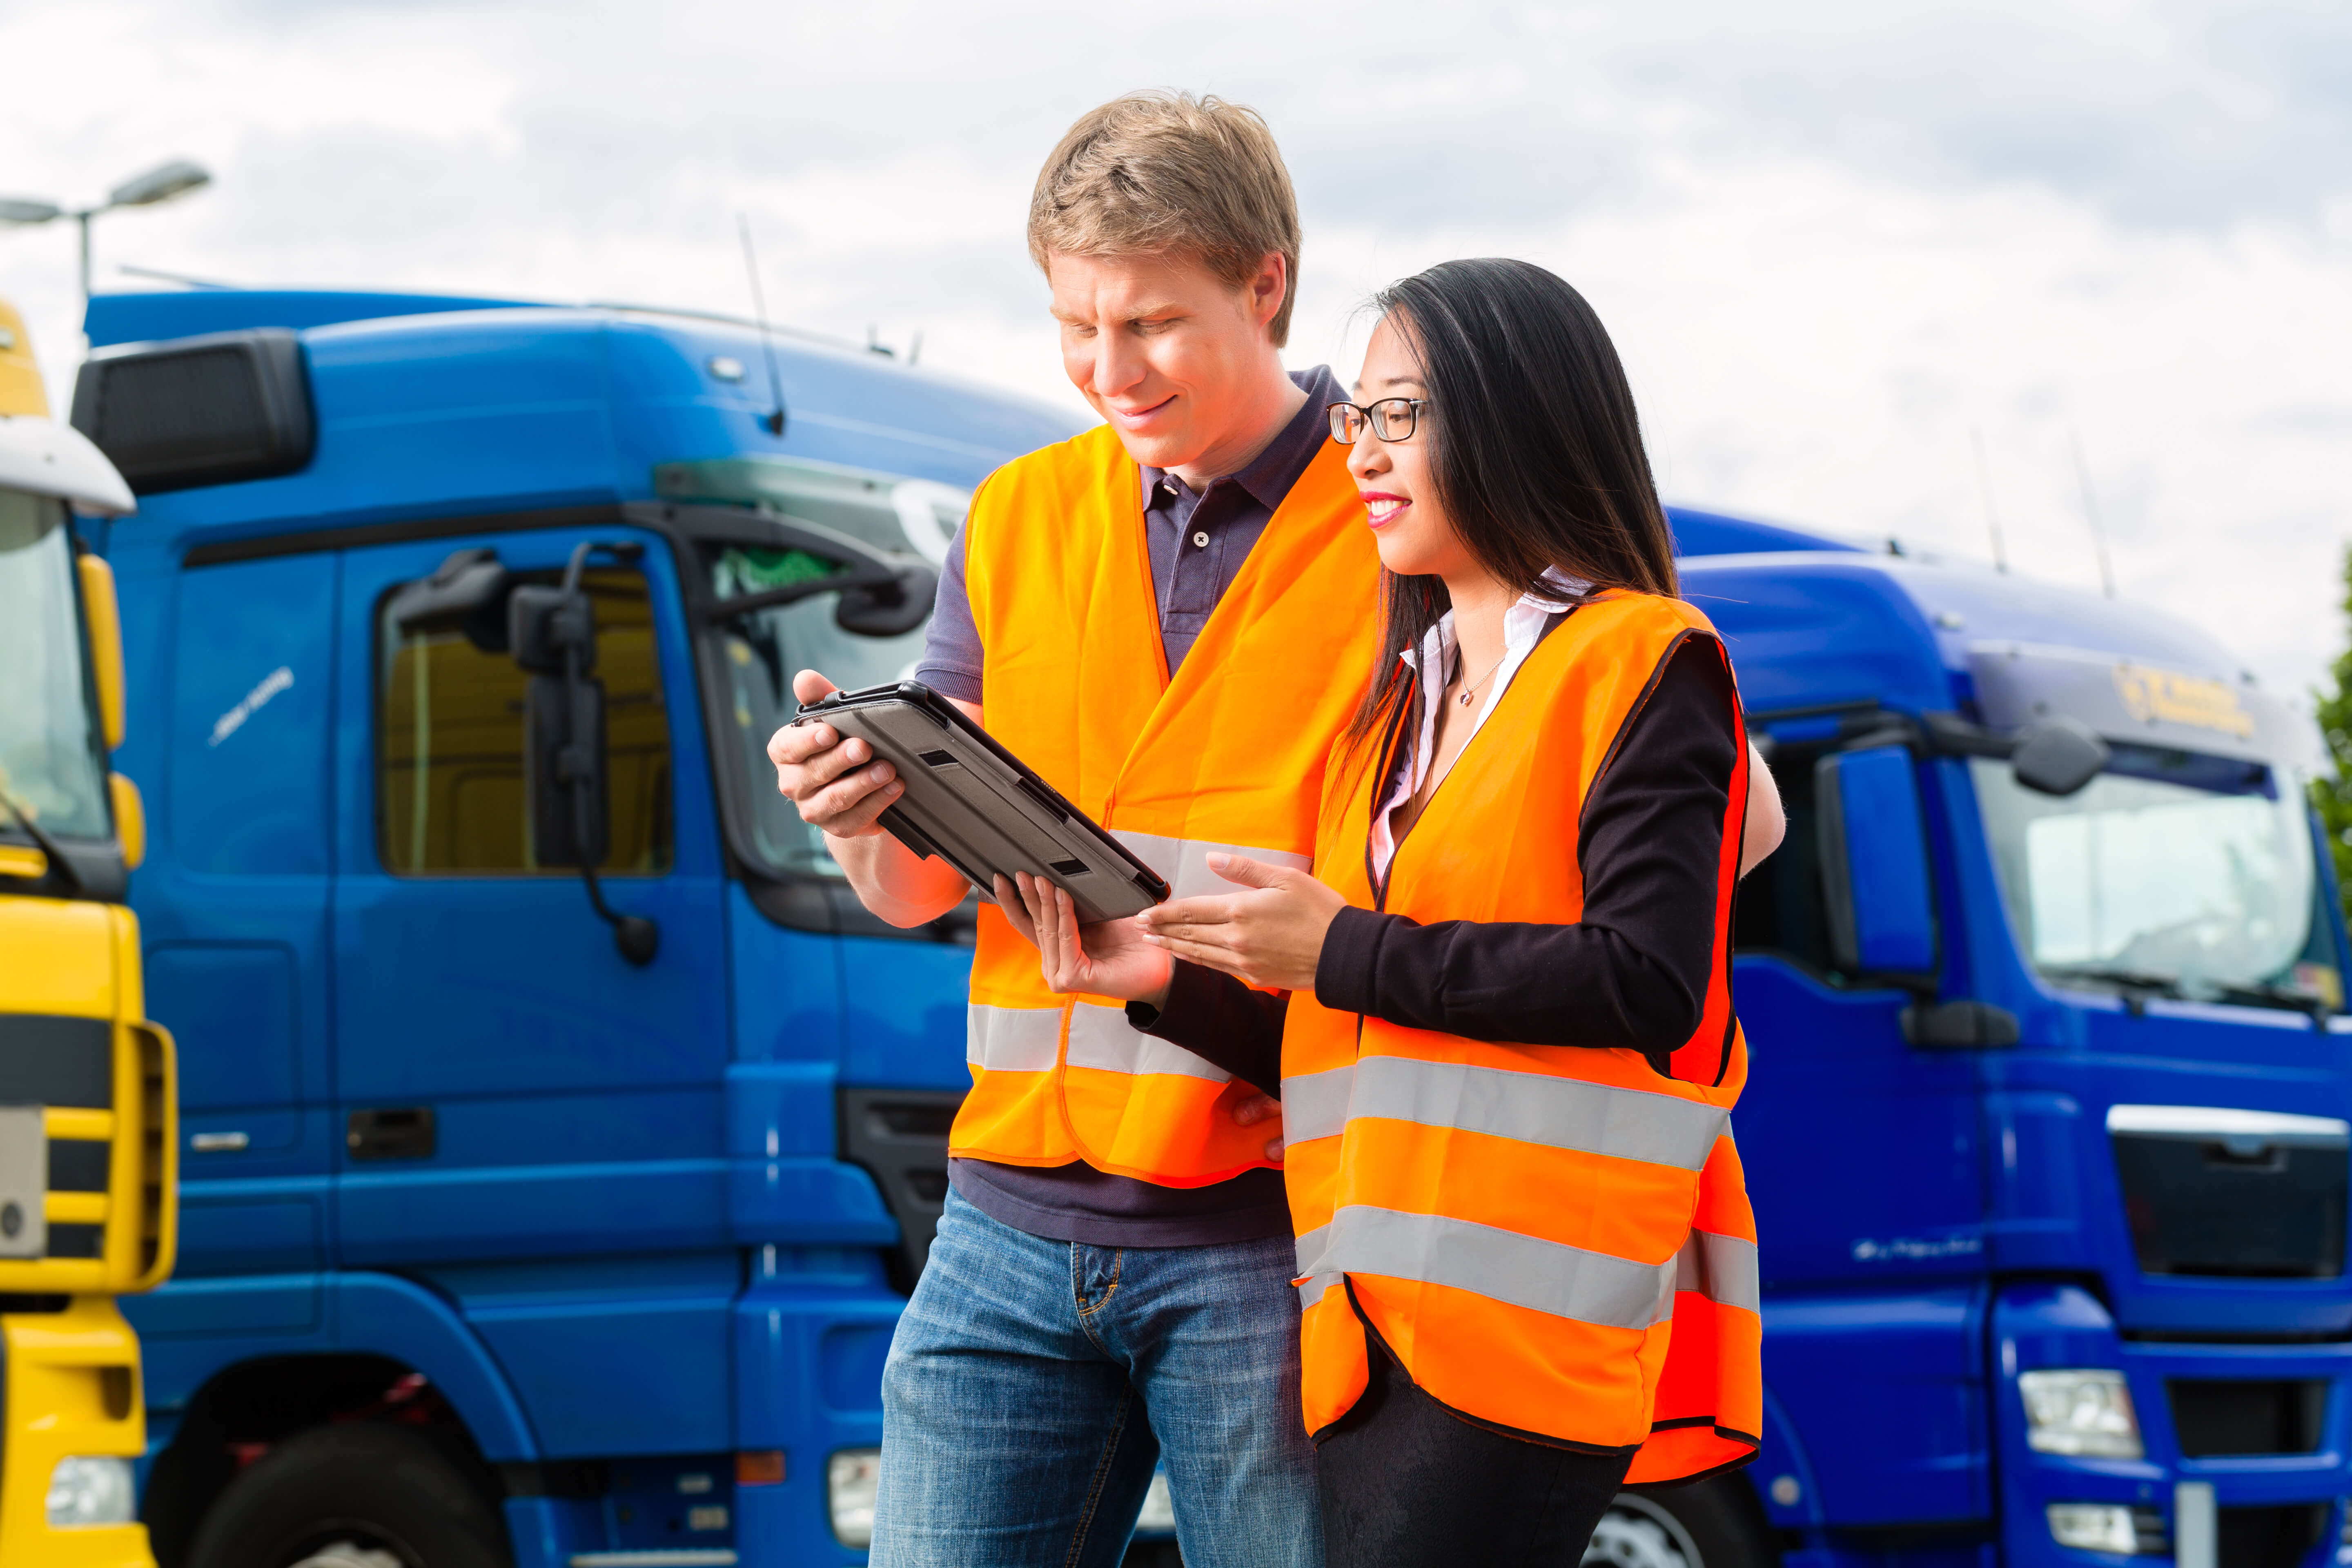 Transportation sector has been investing heavily on IoT platforms to further optimize its efficiency, Source: Shutterstcok